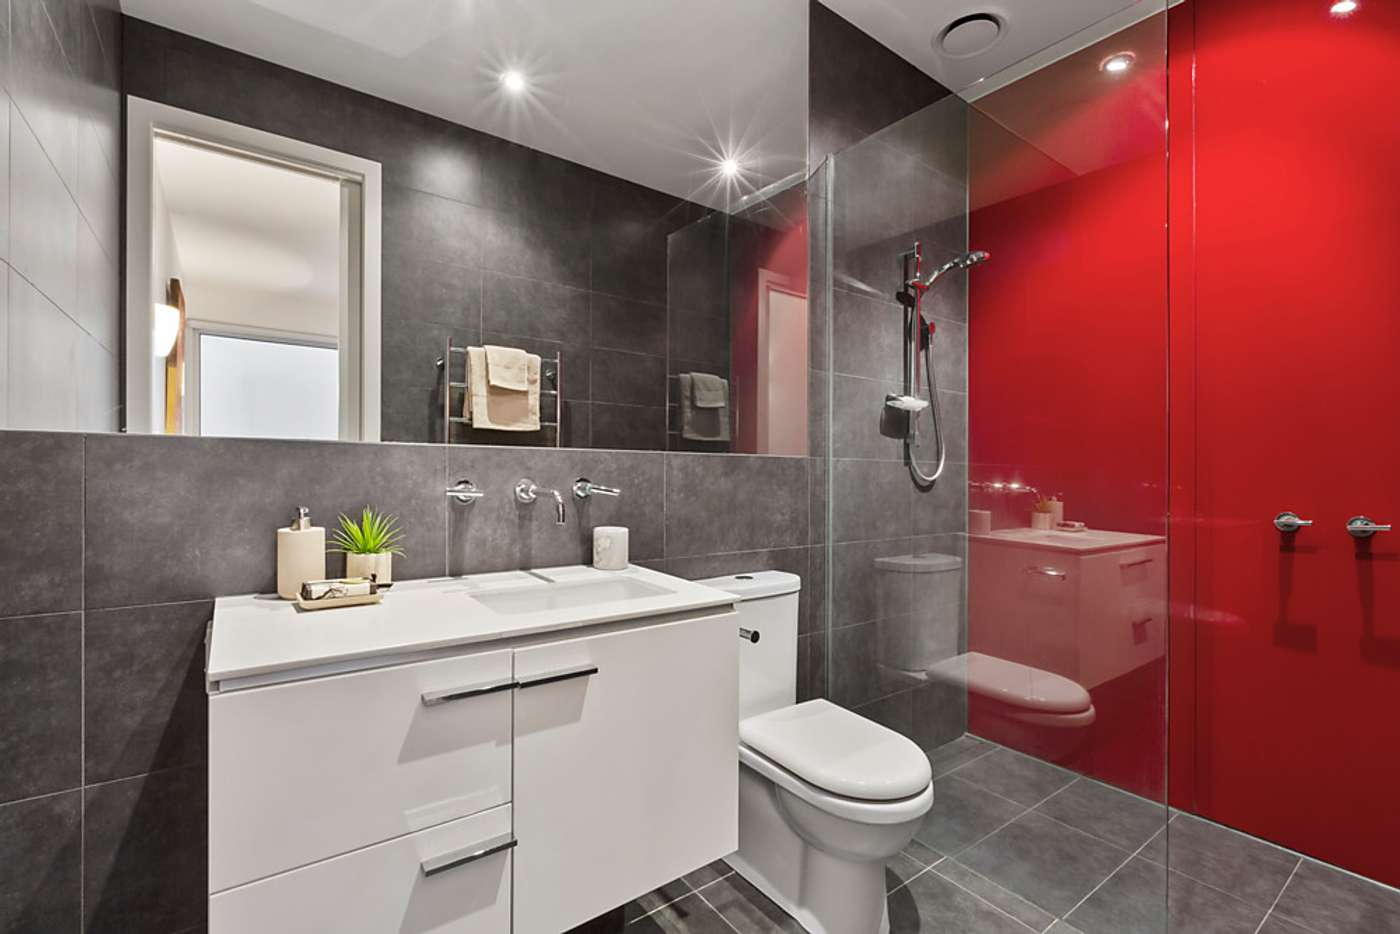 Fifth view of Homely house listing, 11 Carroll Street, Richmond VIC 3121